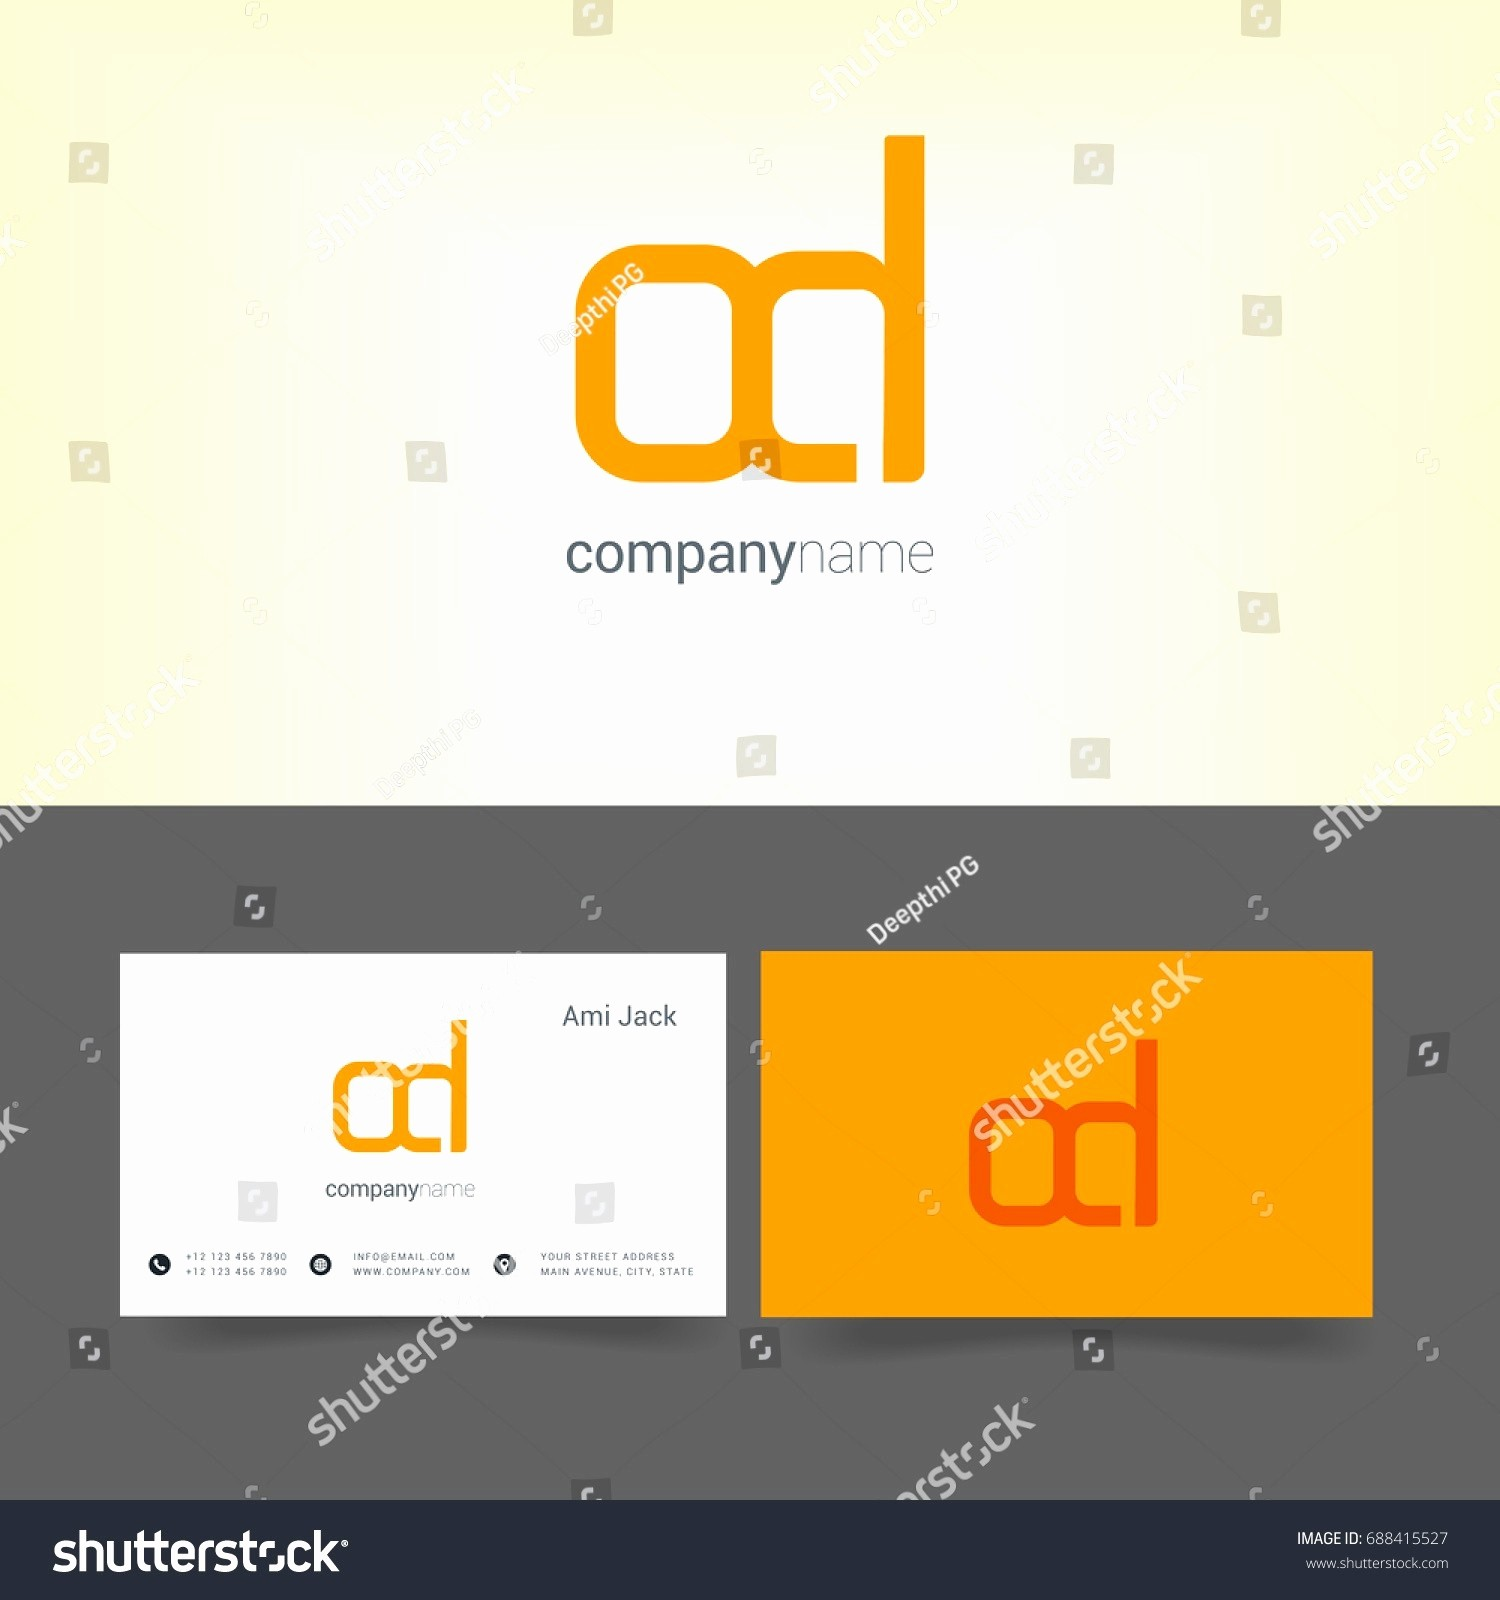 Royal Brites Business Card Template Fresh 20 Business Card Maker Template New Avery Business Card